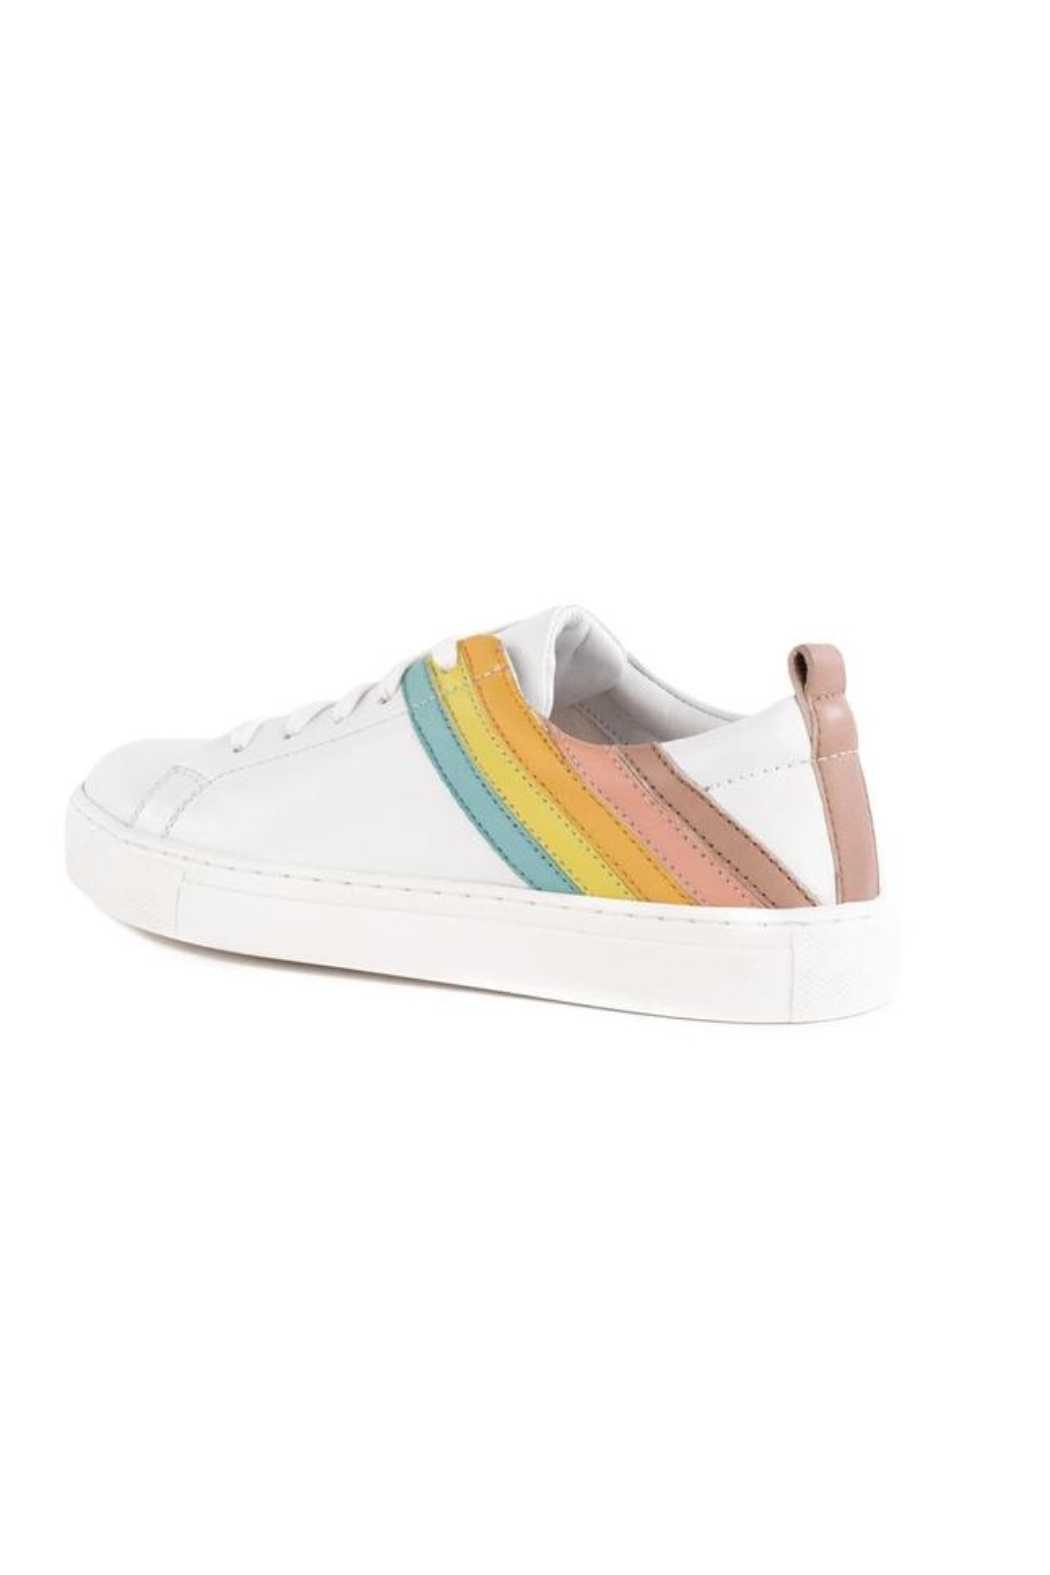 Seychelles Stand Out Leather Rainbow Sneaker - Side Cropped Image